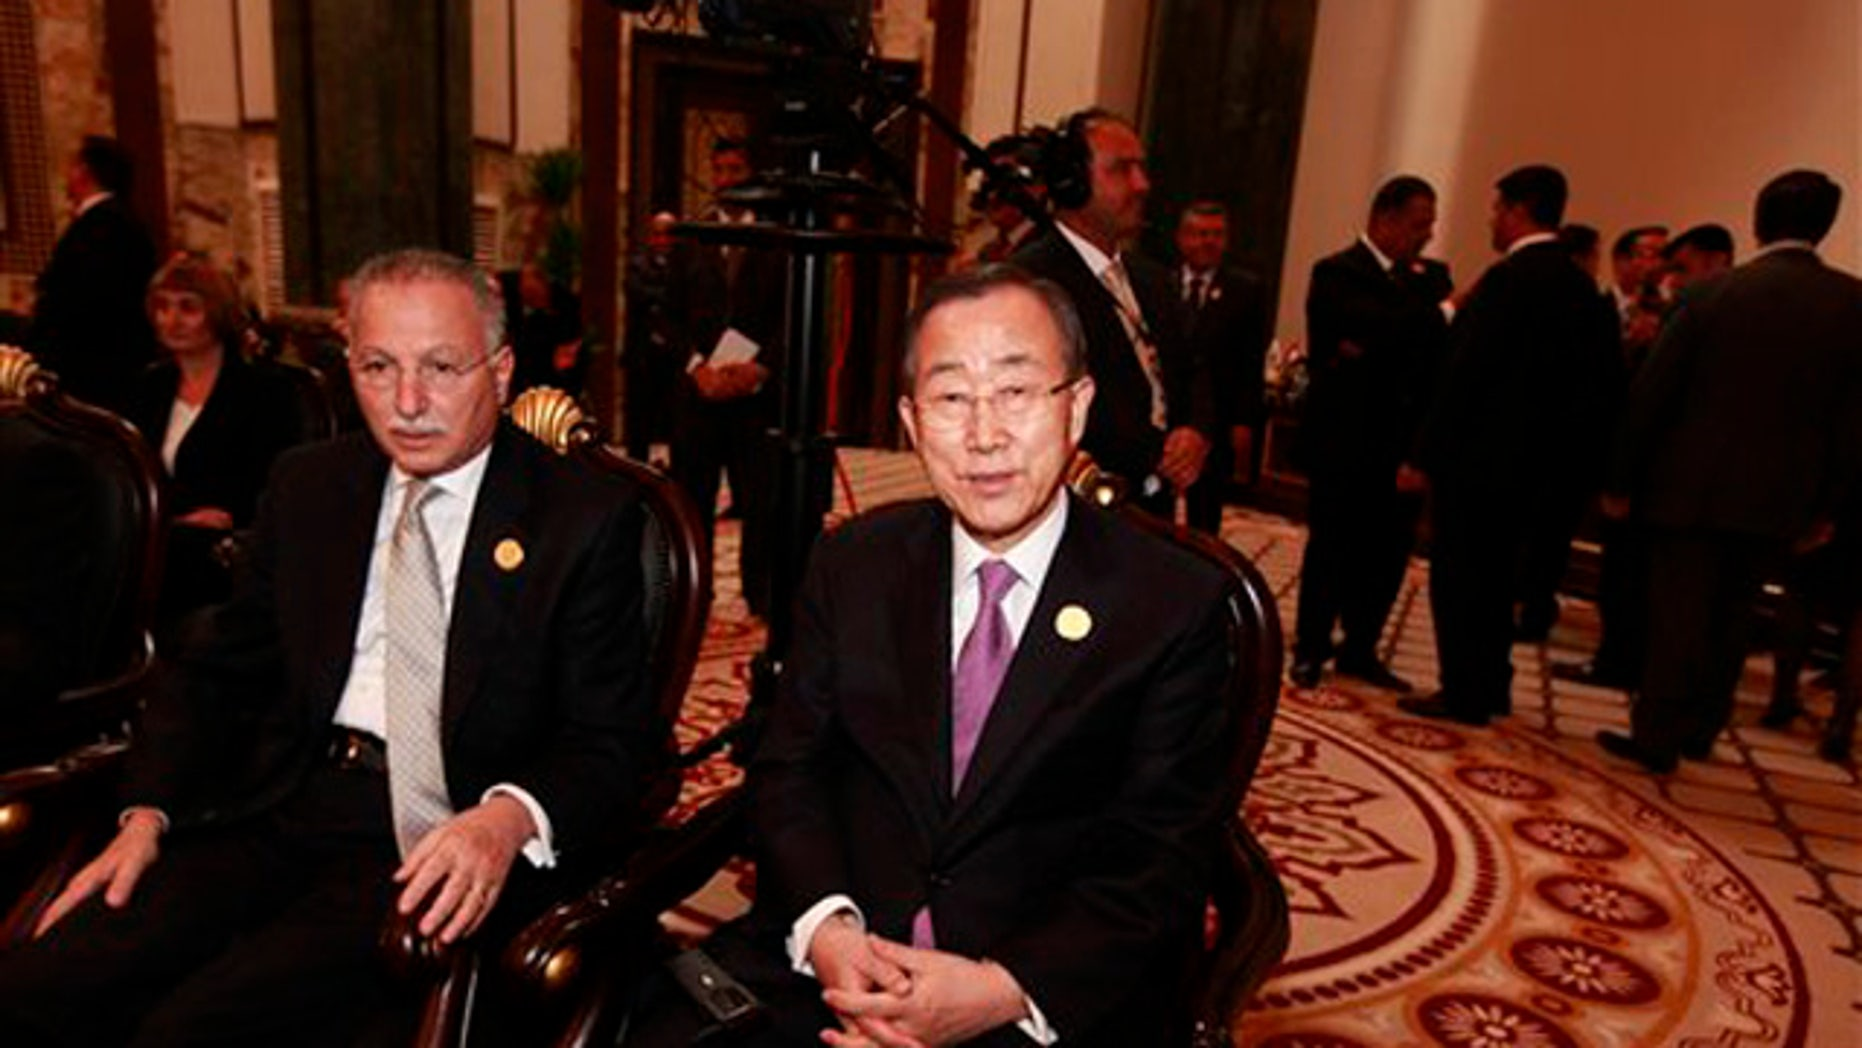 March 29, 2012: United Nations Secretary-General Ban Ki-moon, center, attends the Arab League summit in Baghdad, Iraq.